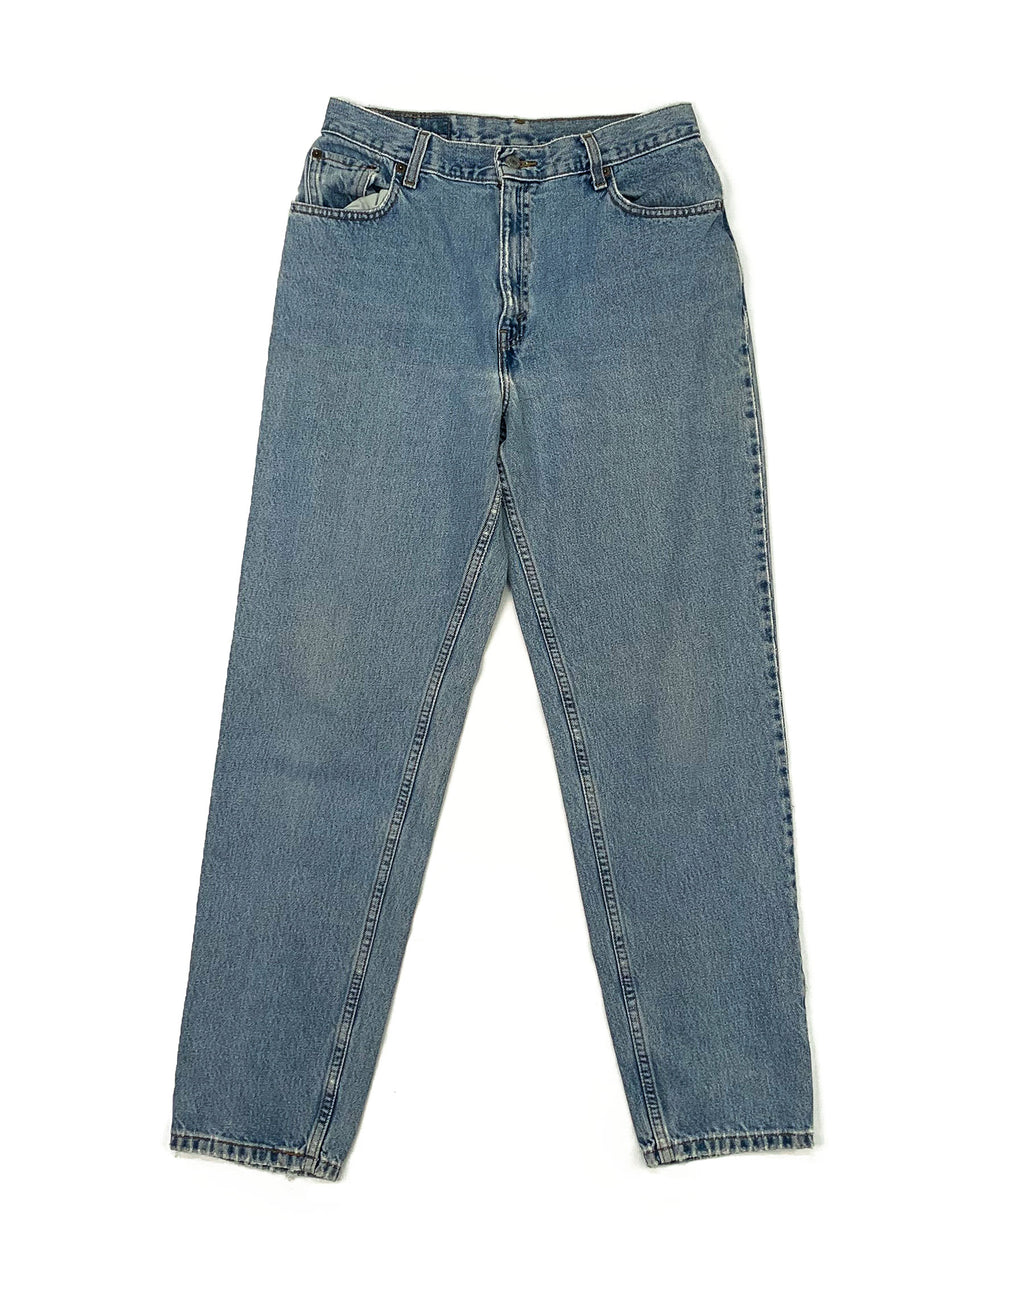 LEVI'S LIGHT WASH 550 JEANS